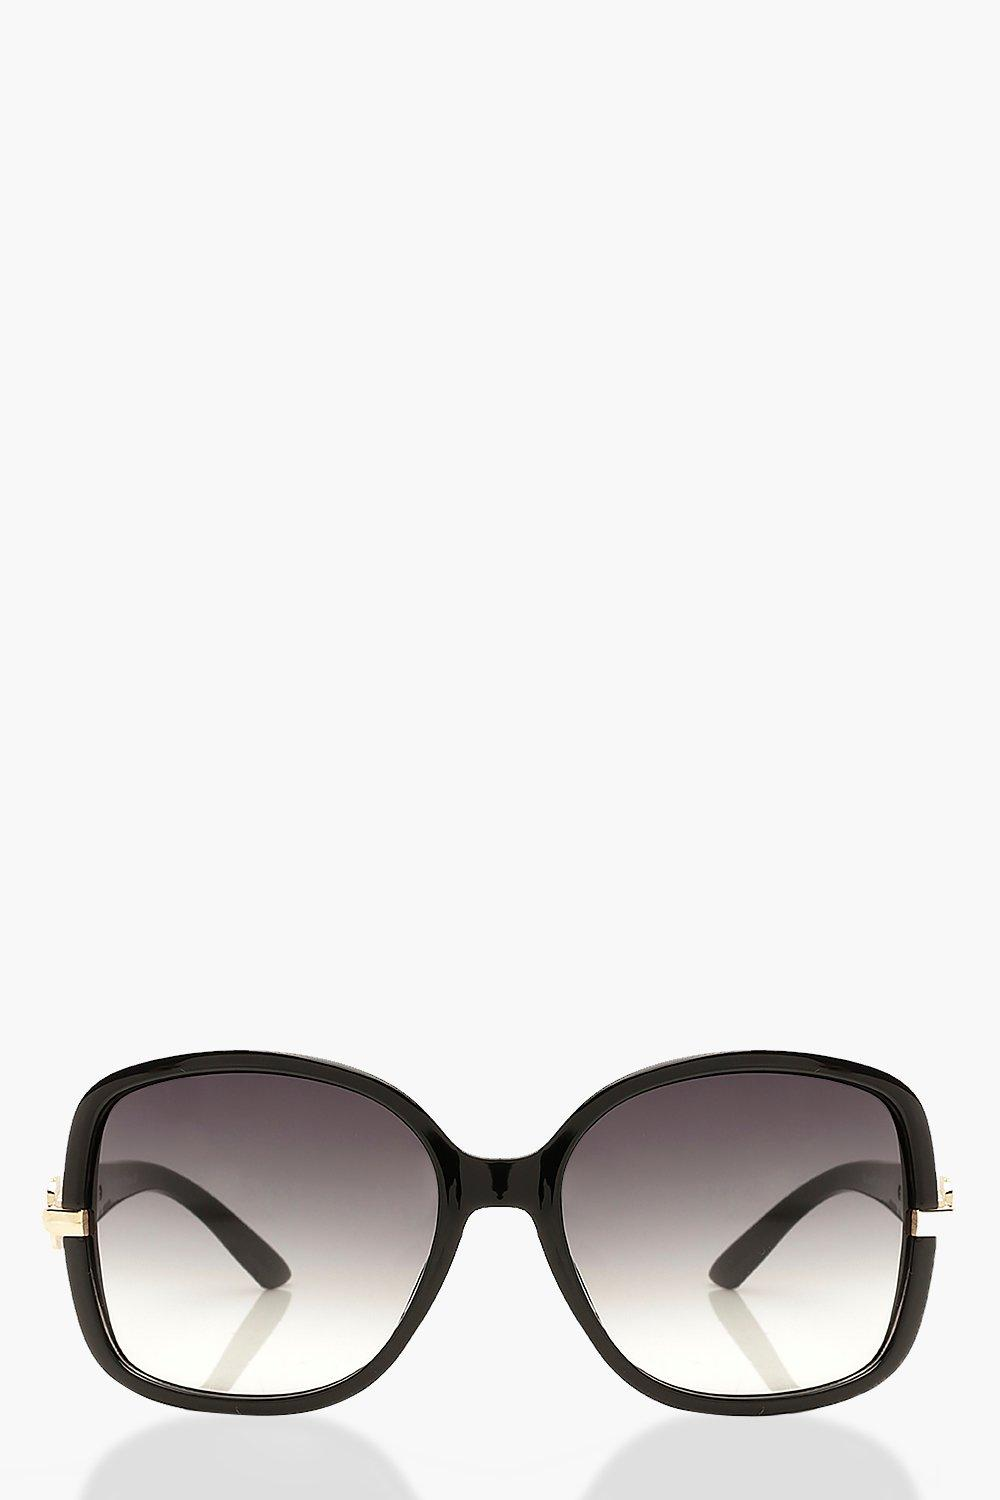 boohoo Womens Oversized Chain Detail Sunglasses - Grey - One Size, Grey